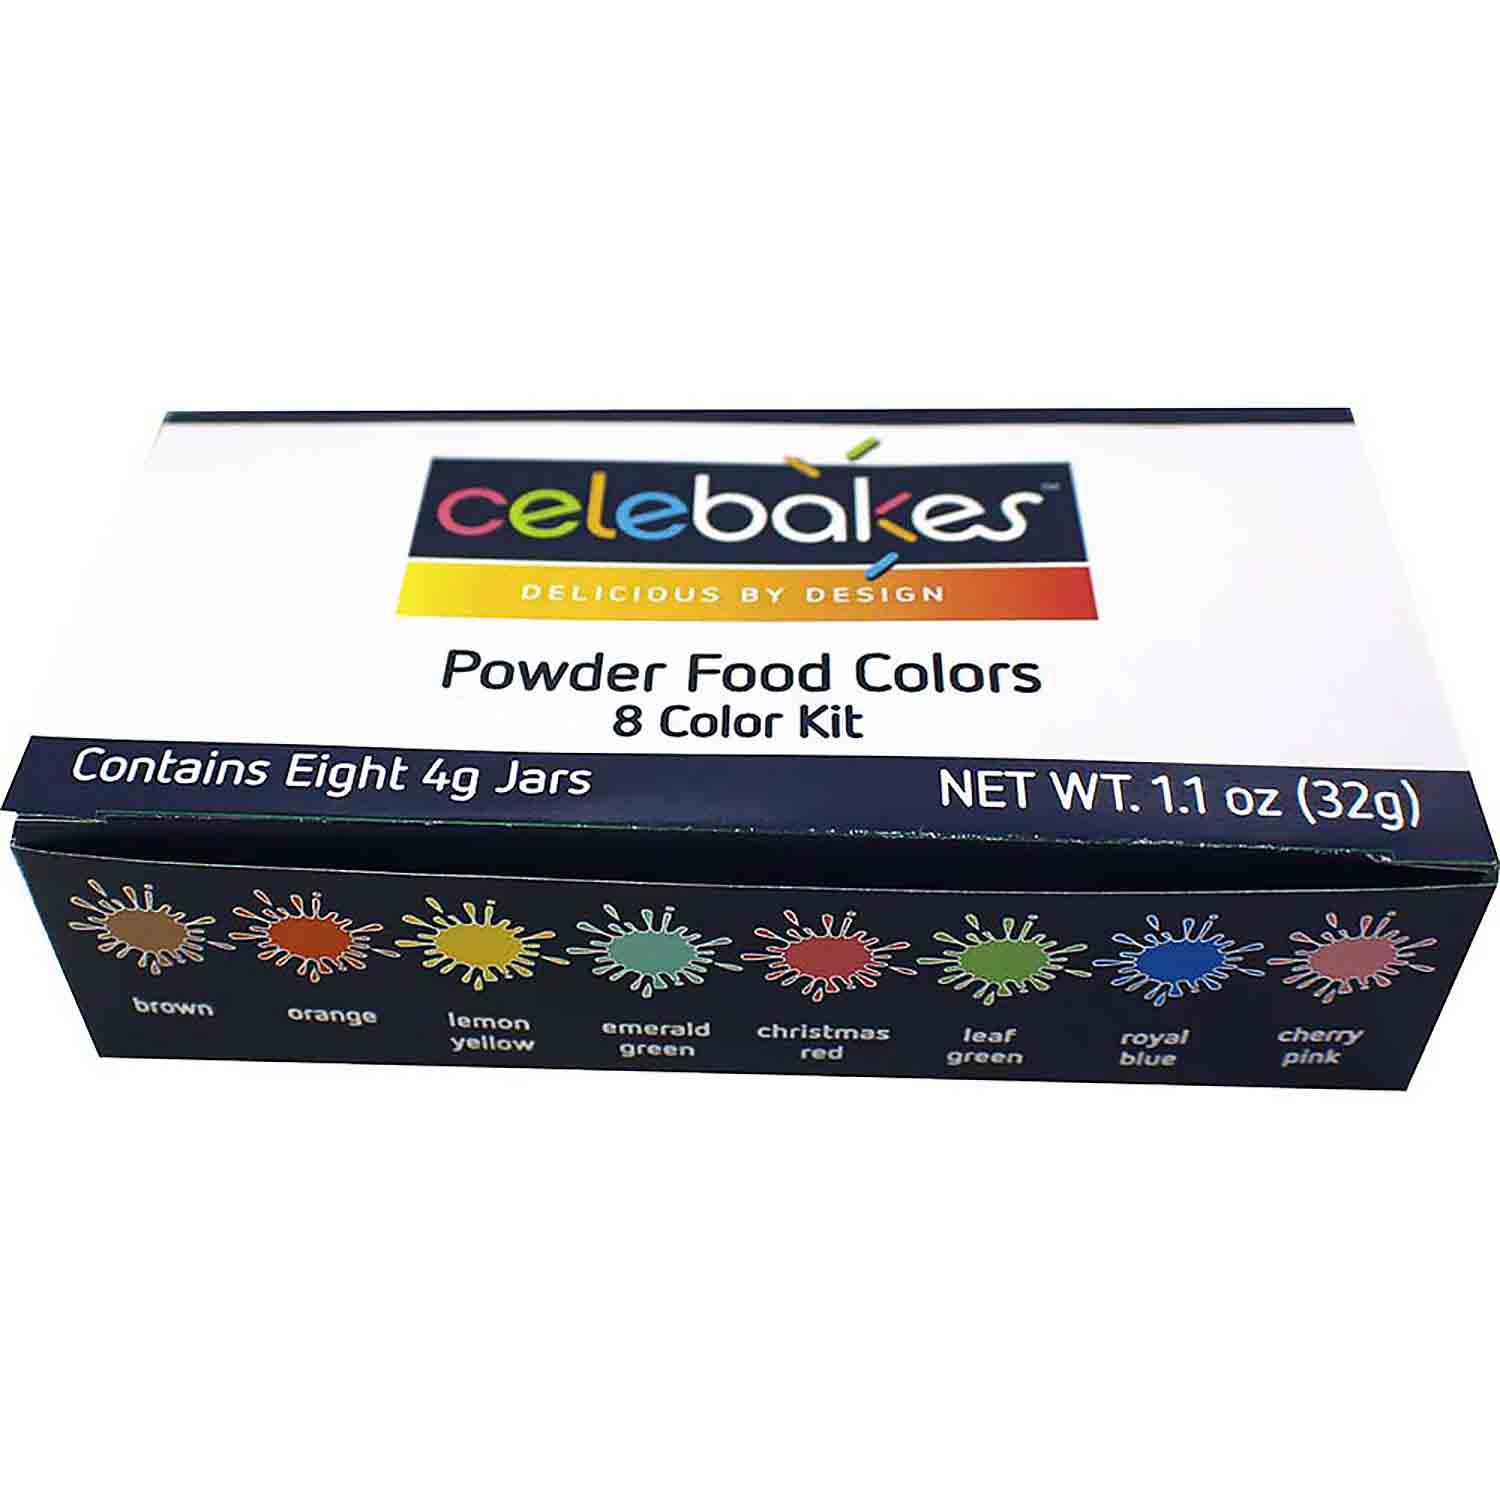 Powder Food Color Kit